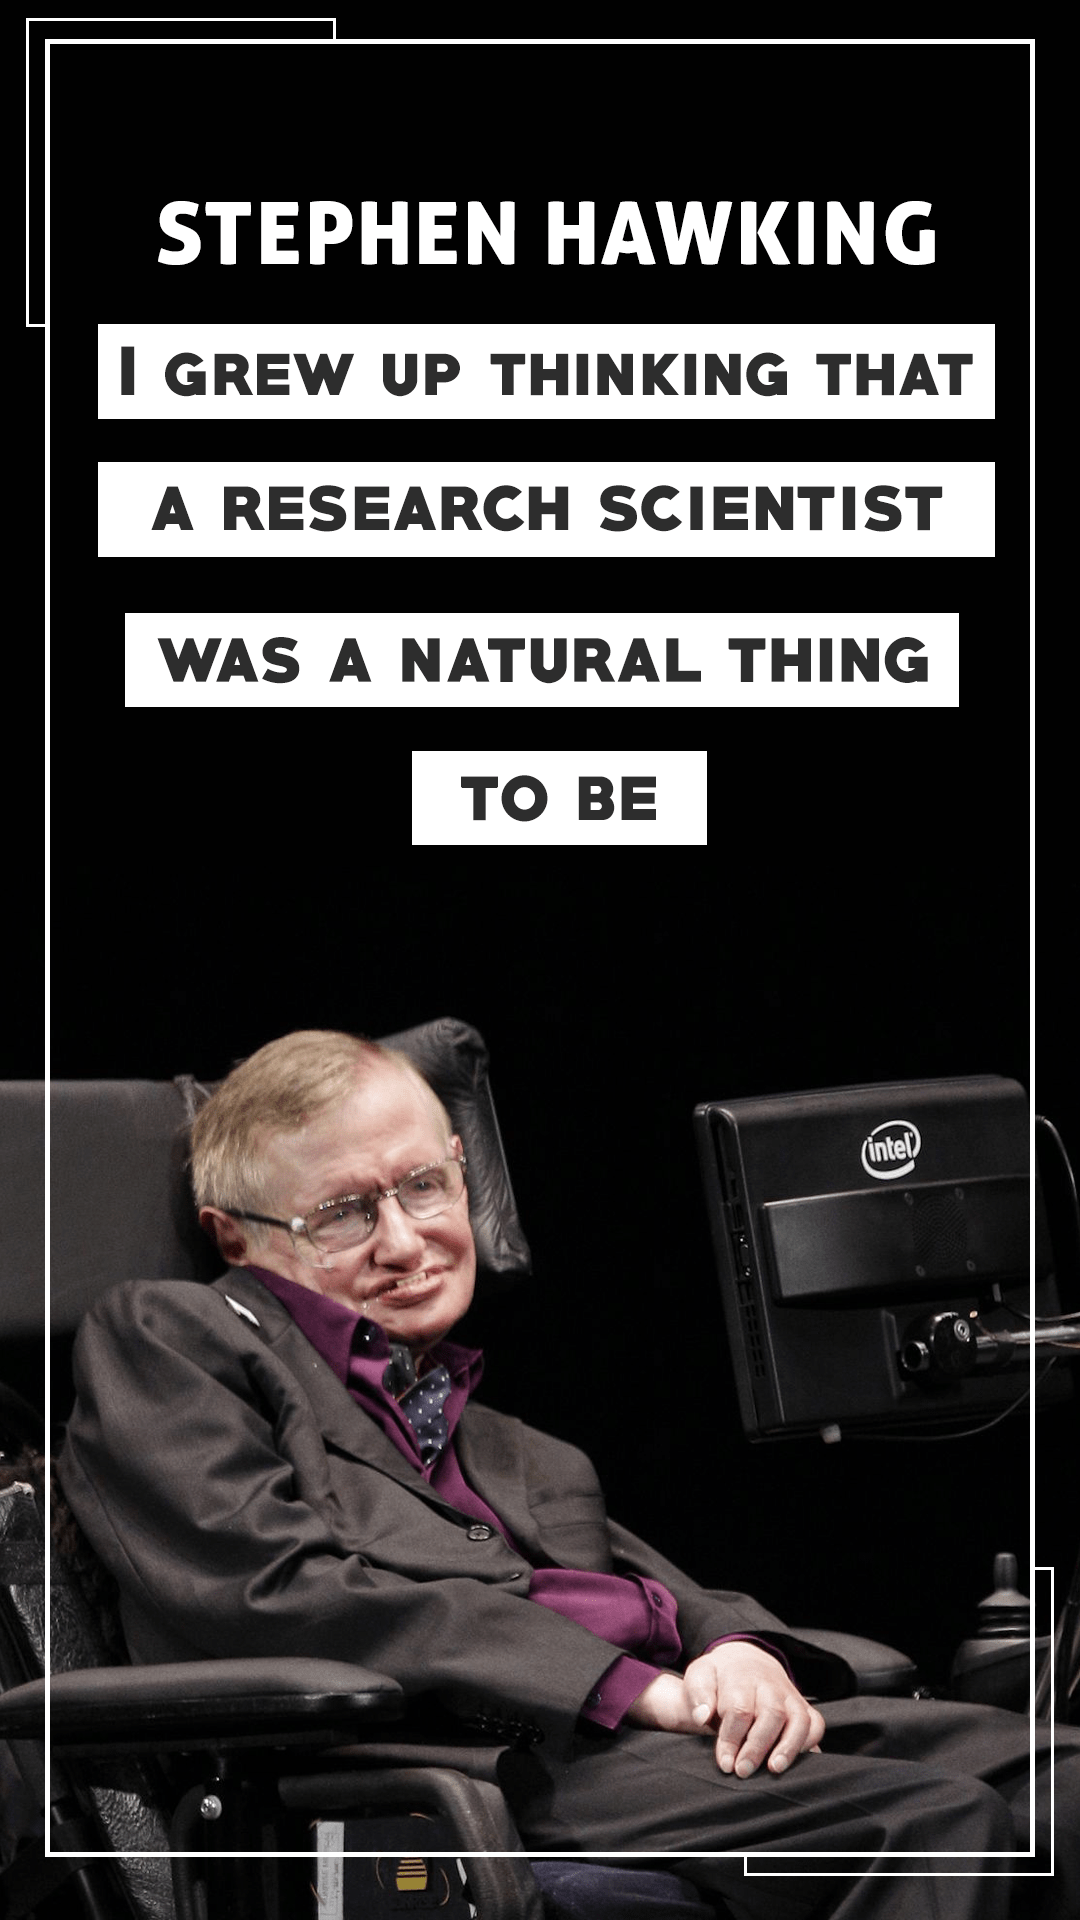 How To Change The Wallpaper On Iphone Stephen Hawking Quotes Wallpapers 2018